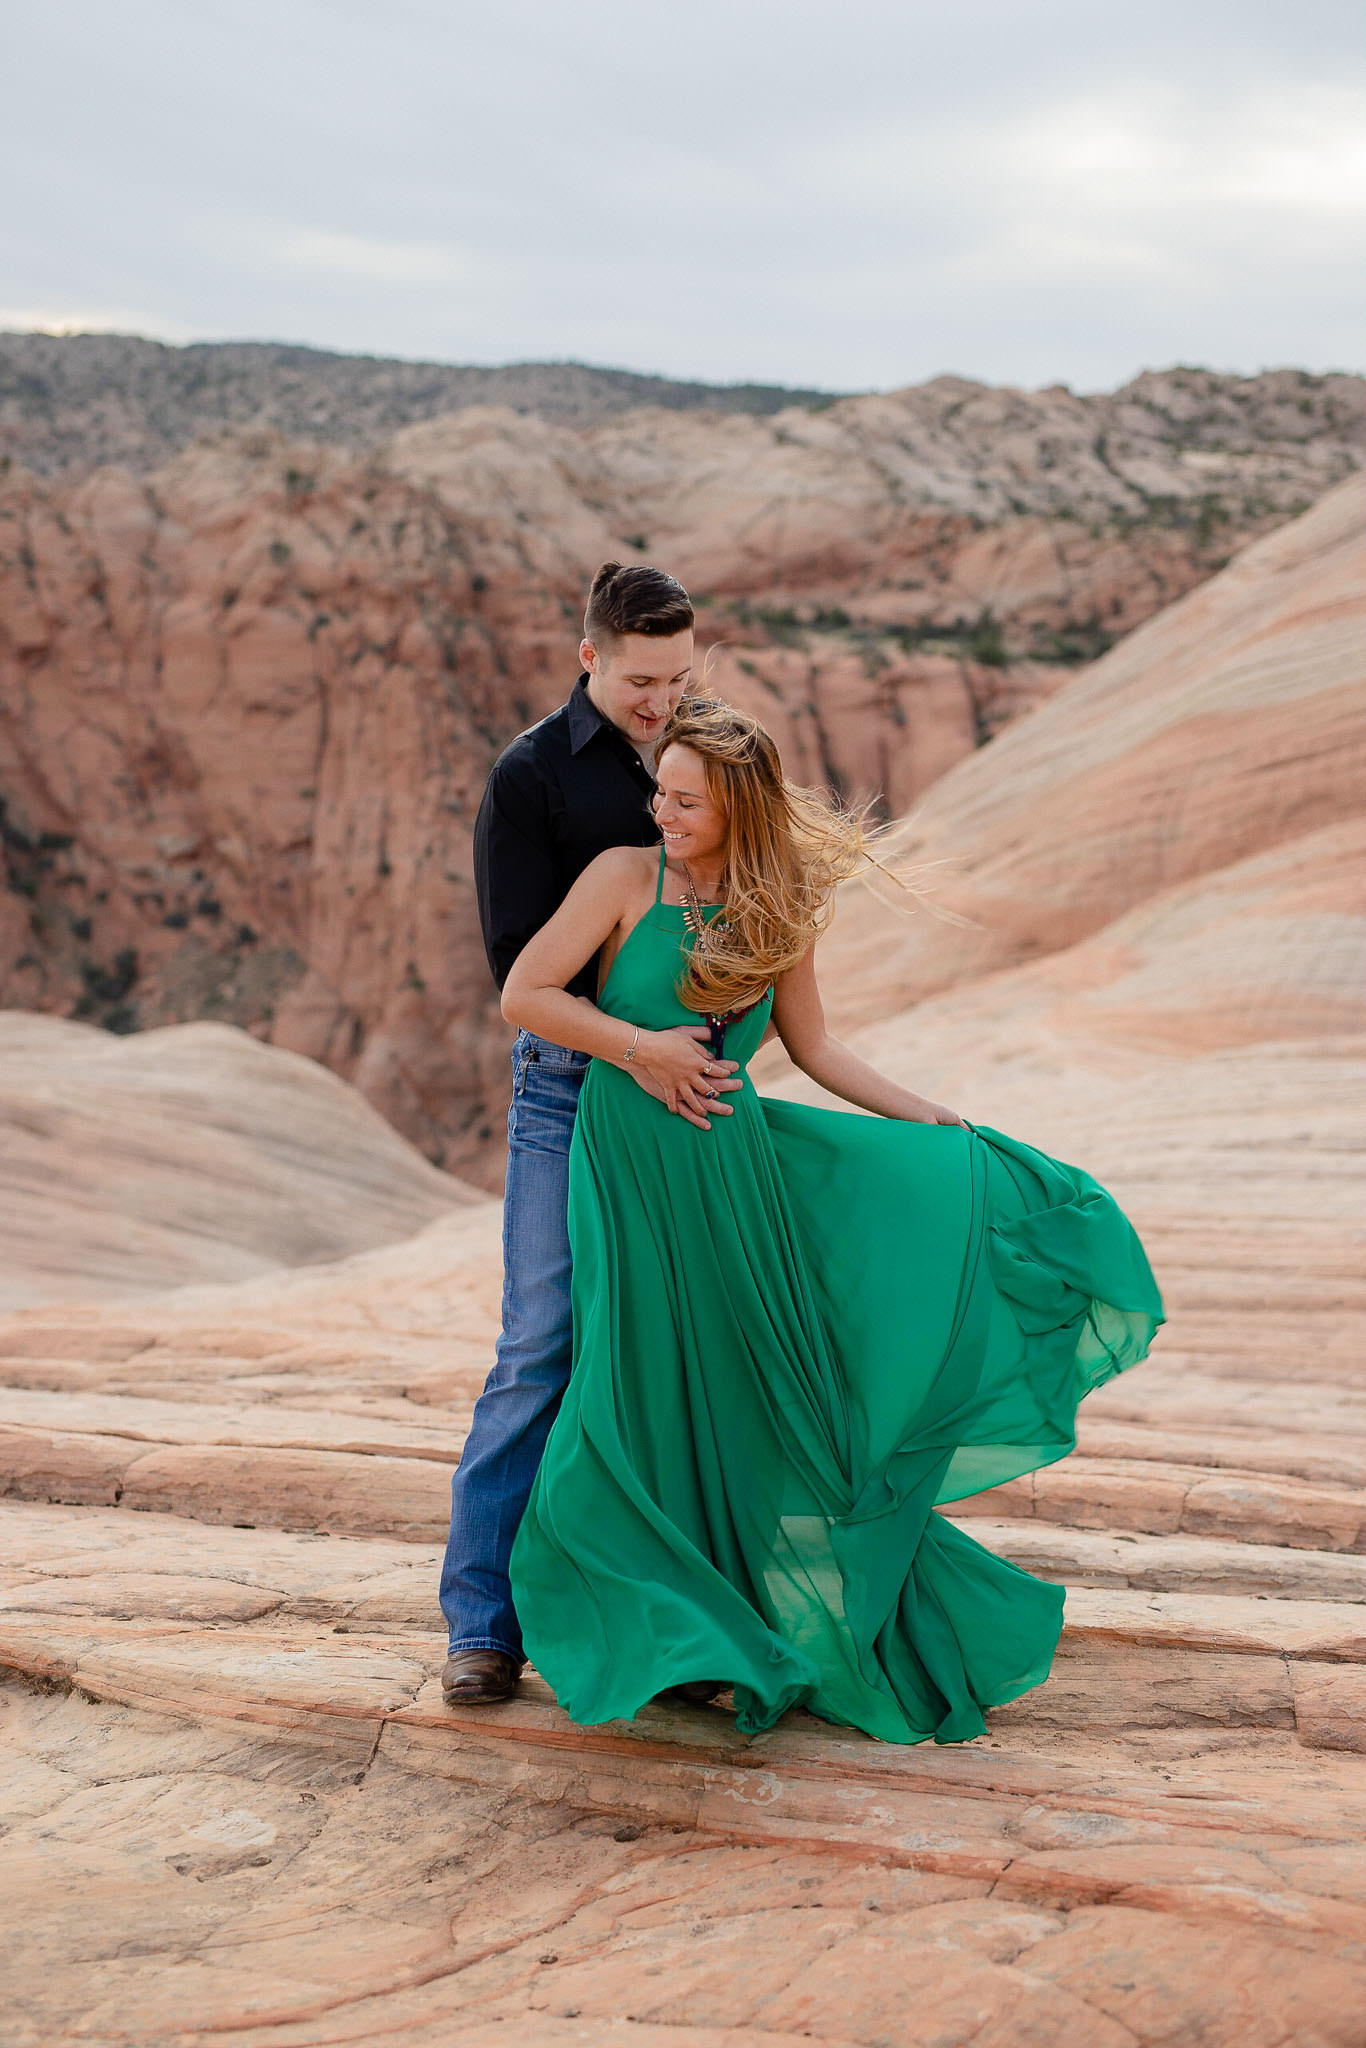 Guy holds girl on a windy day during their Utah adventure session